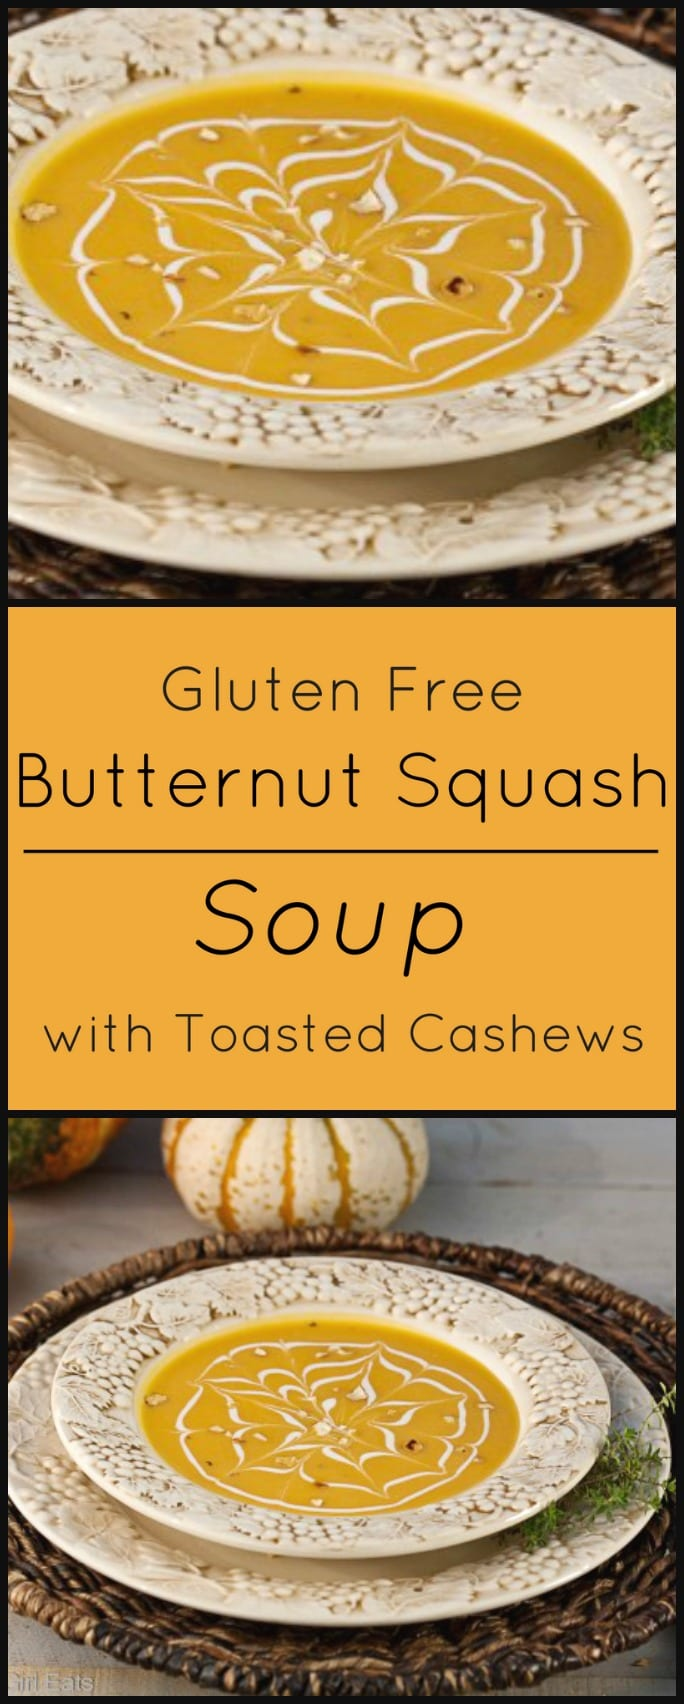 Gluten free Butternut Squash Soup with Toasted Cashews.